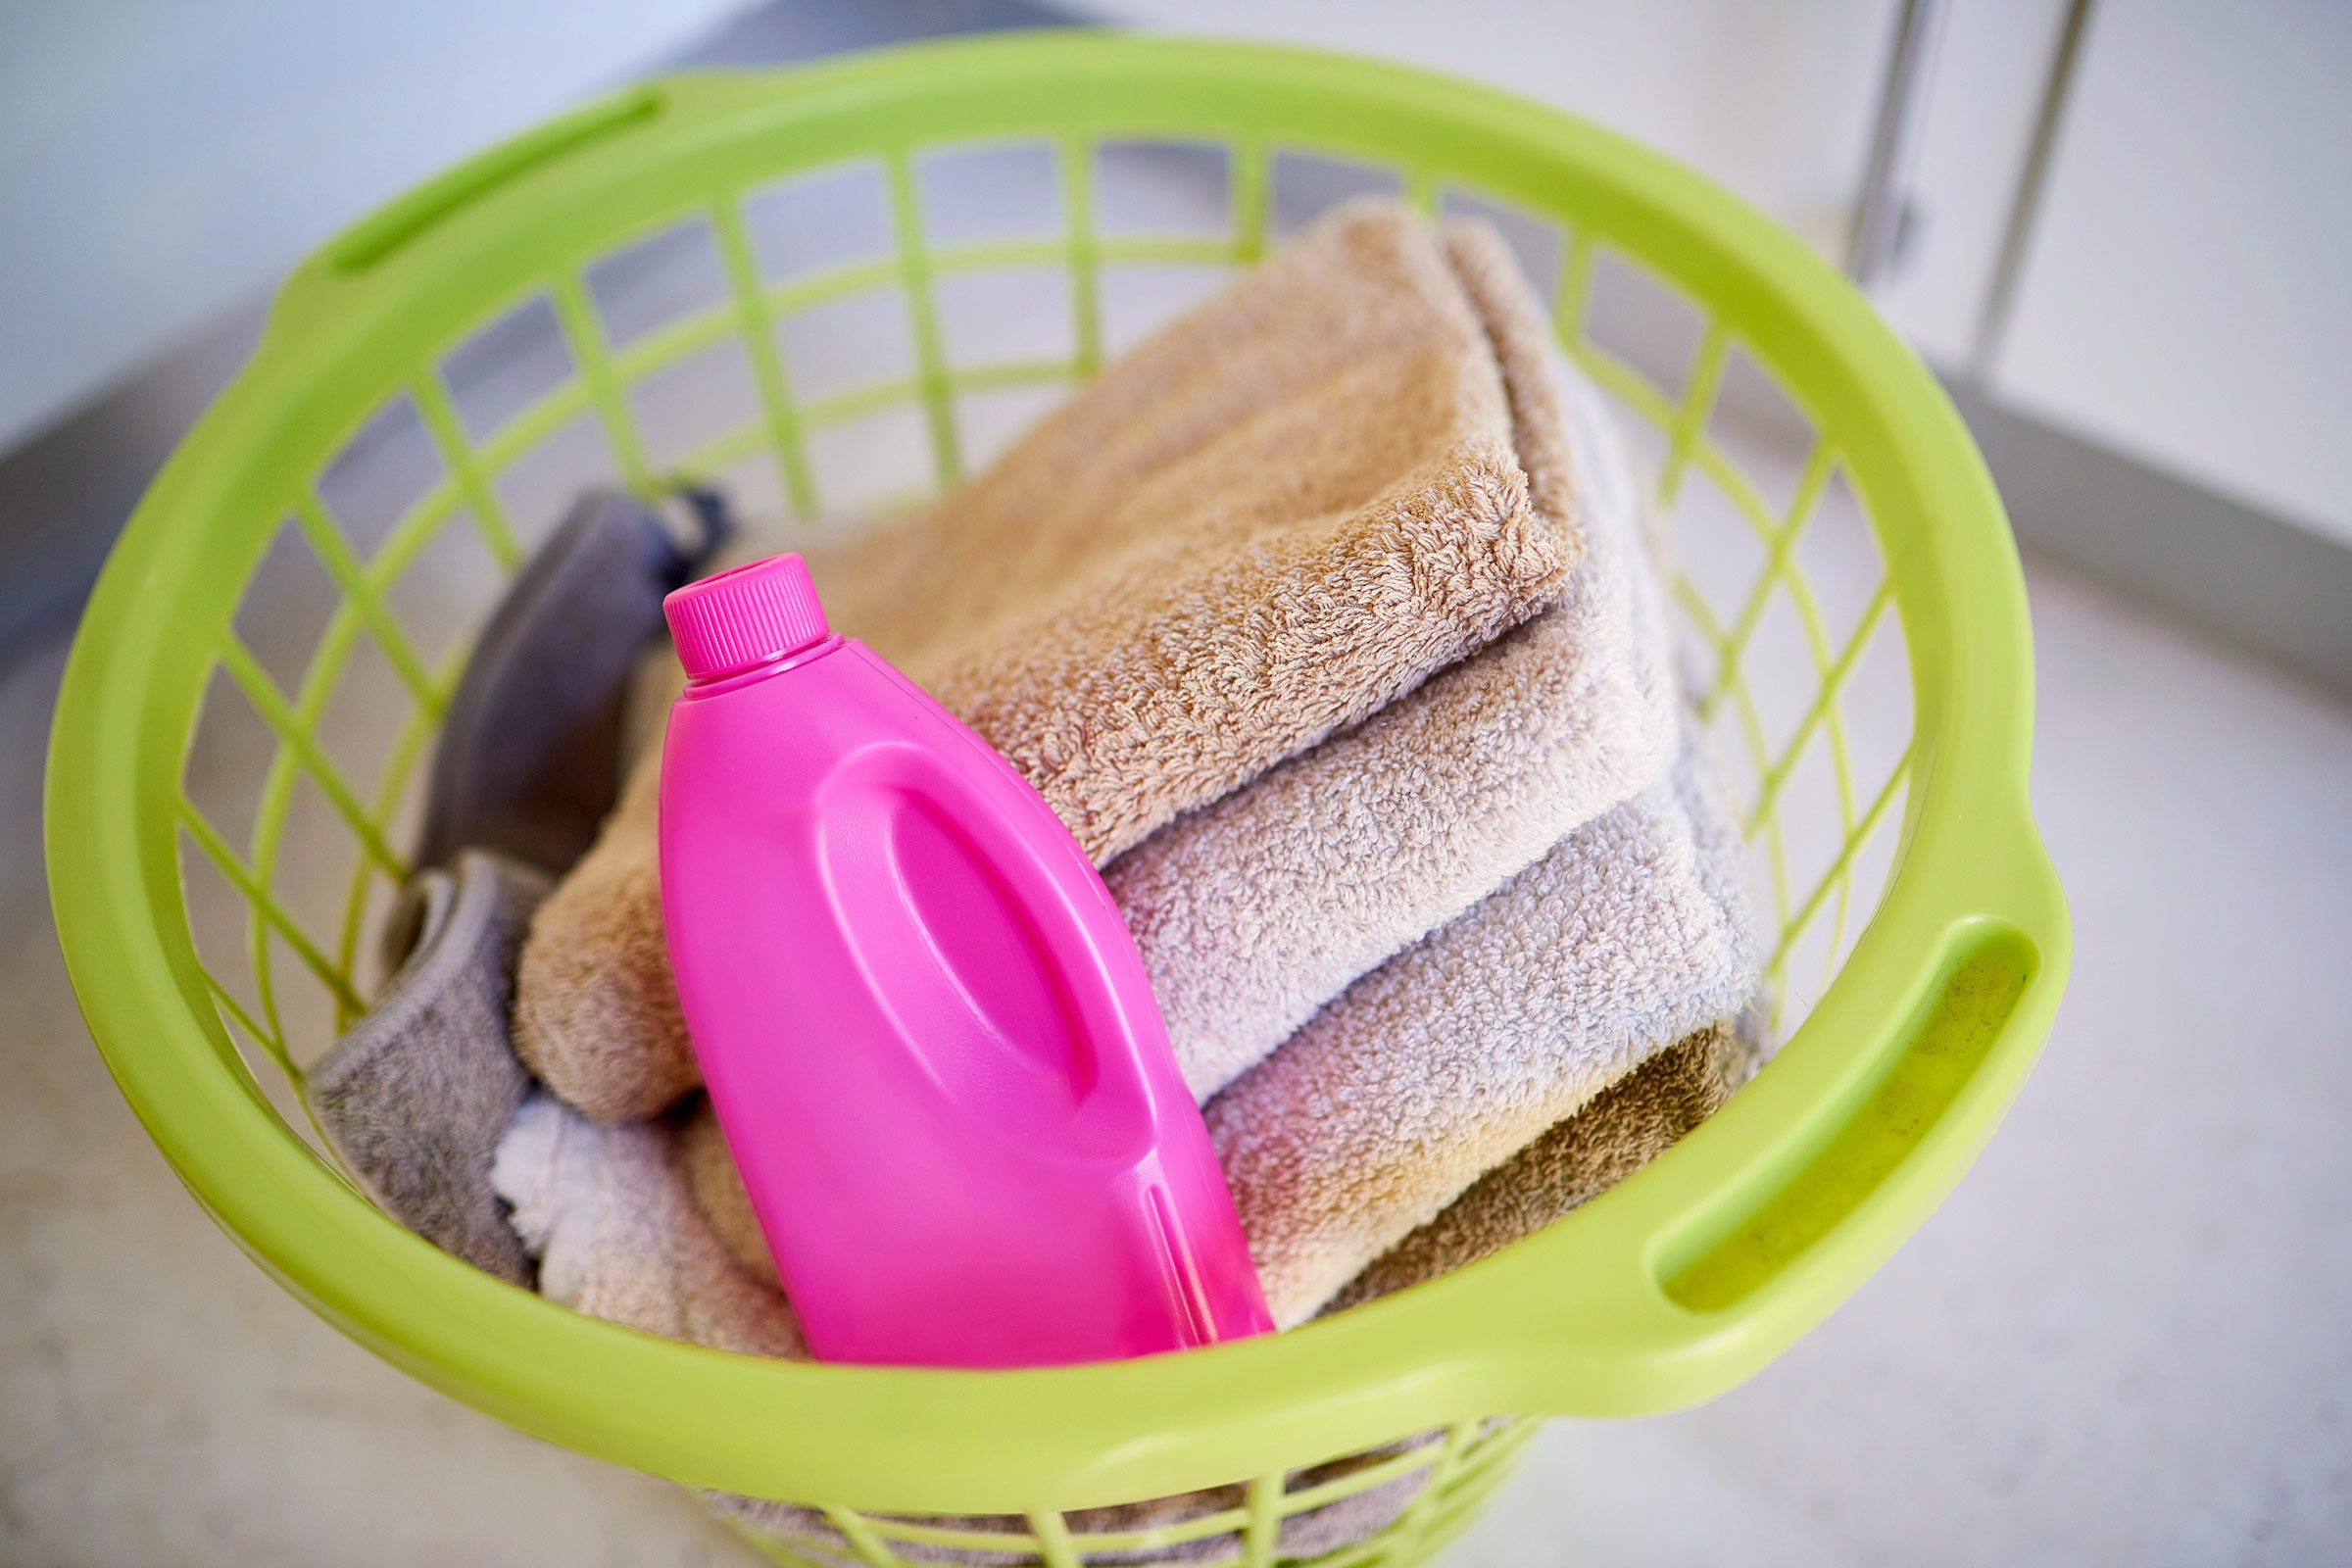 50% Have Special Laundry Hygiene Habits